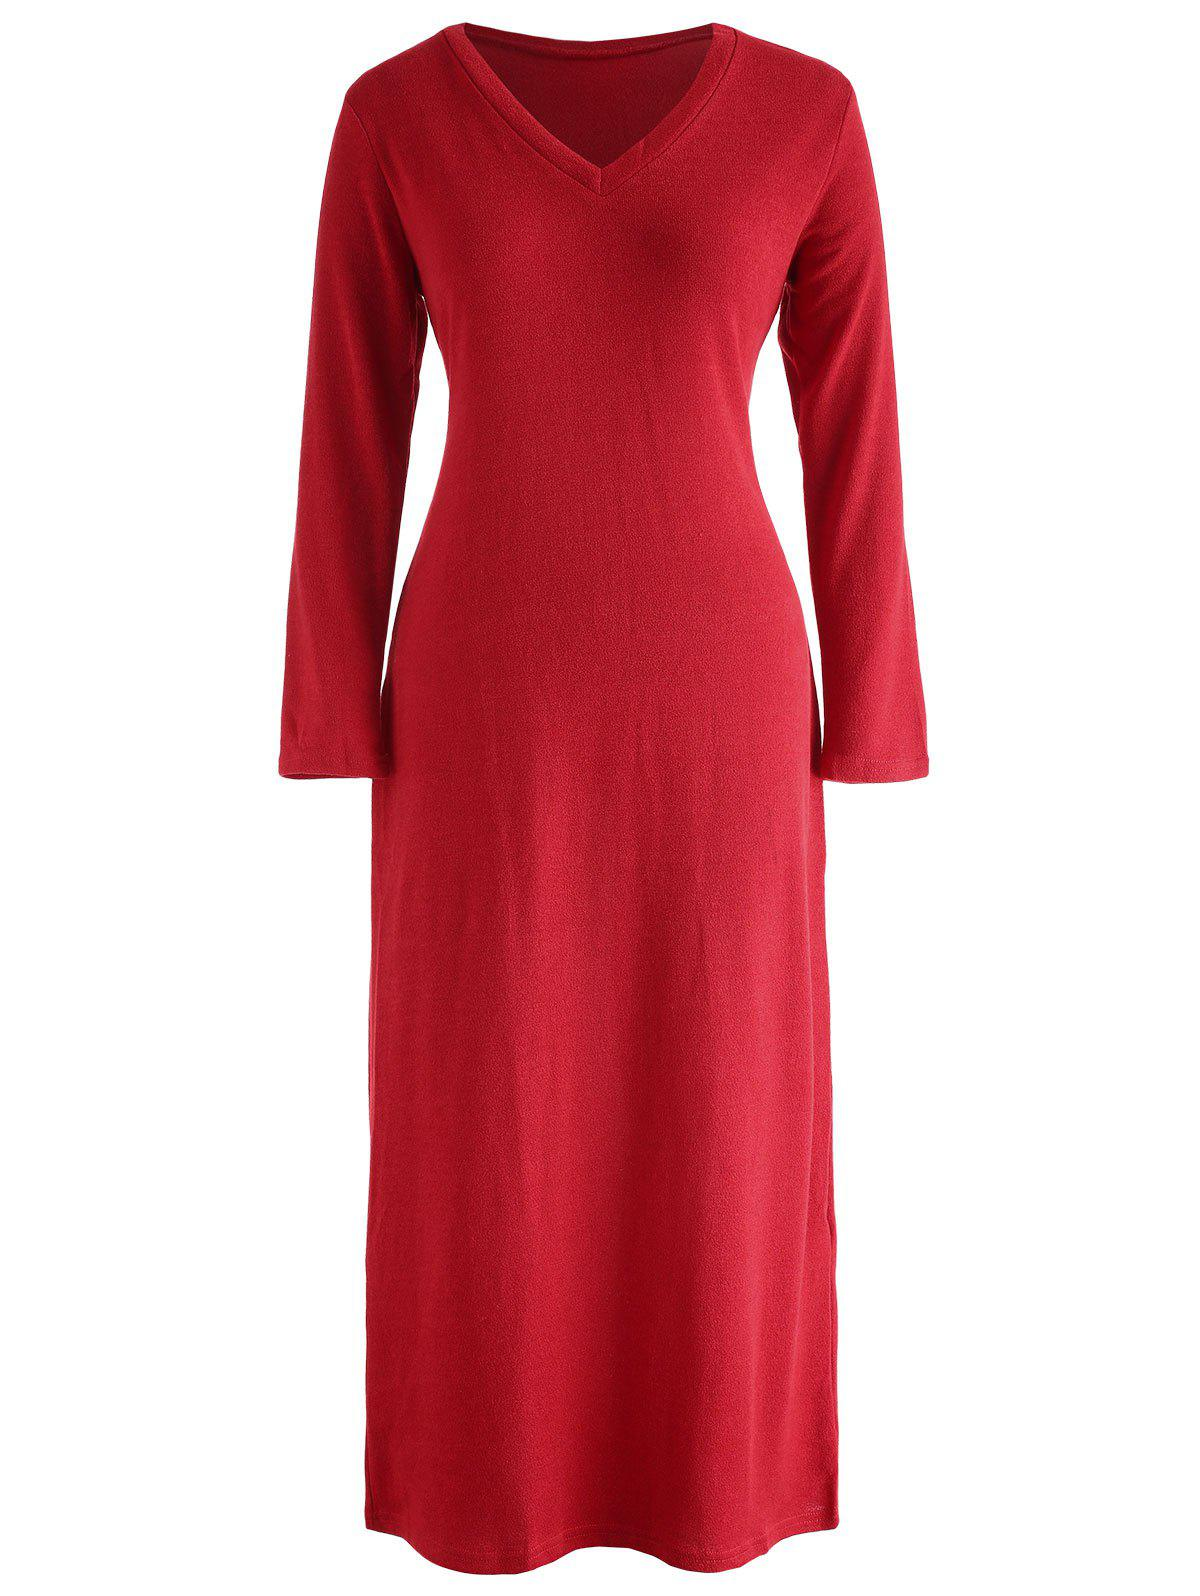 V Neck Maxi Knitwear Dress фото